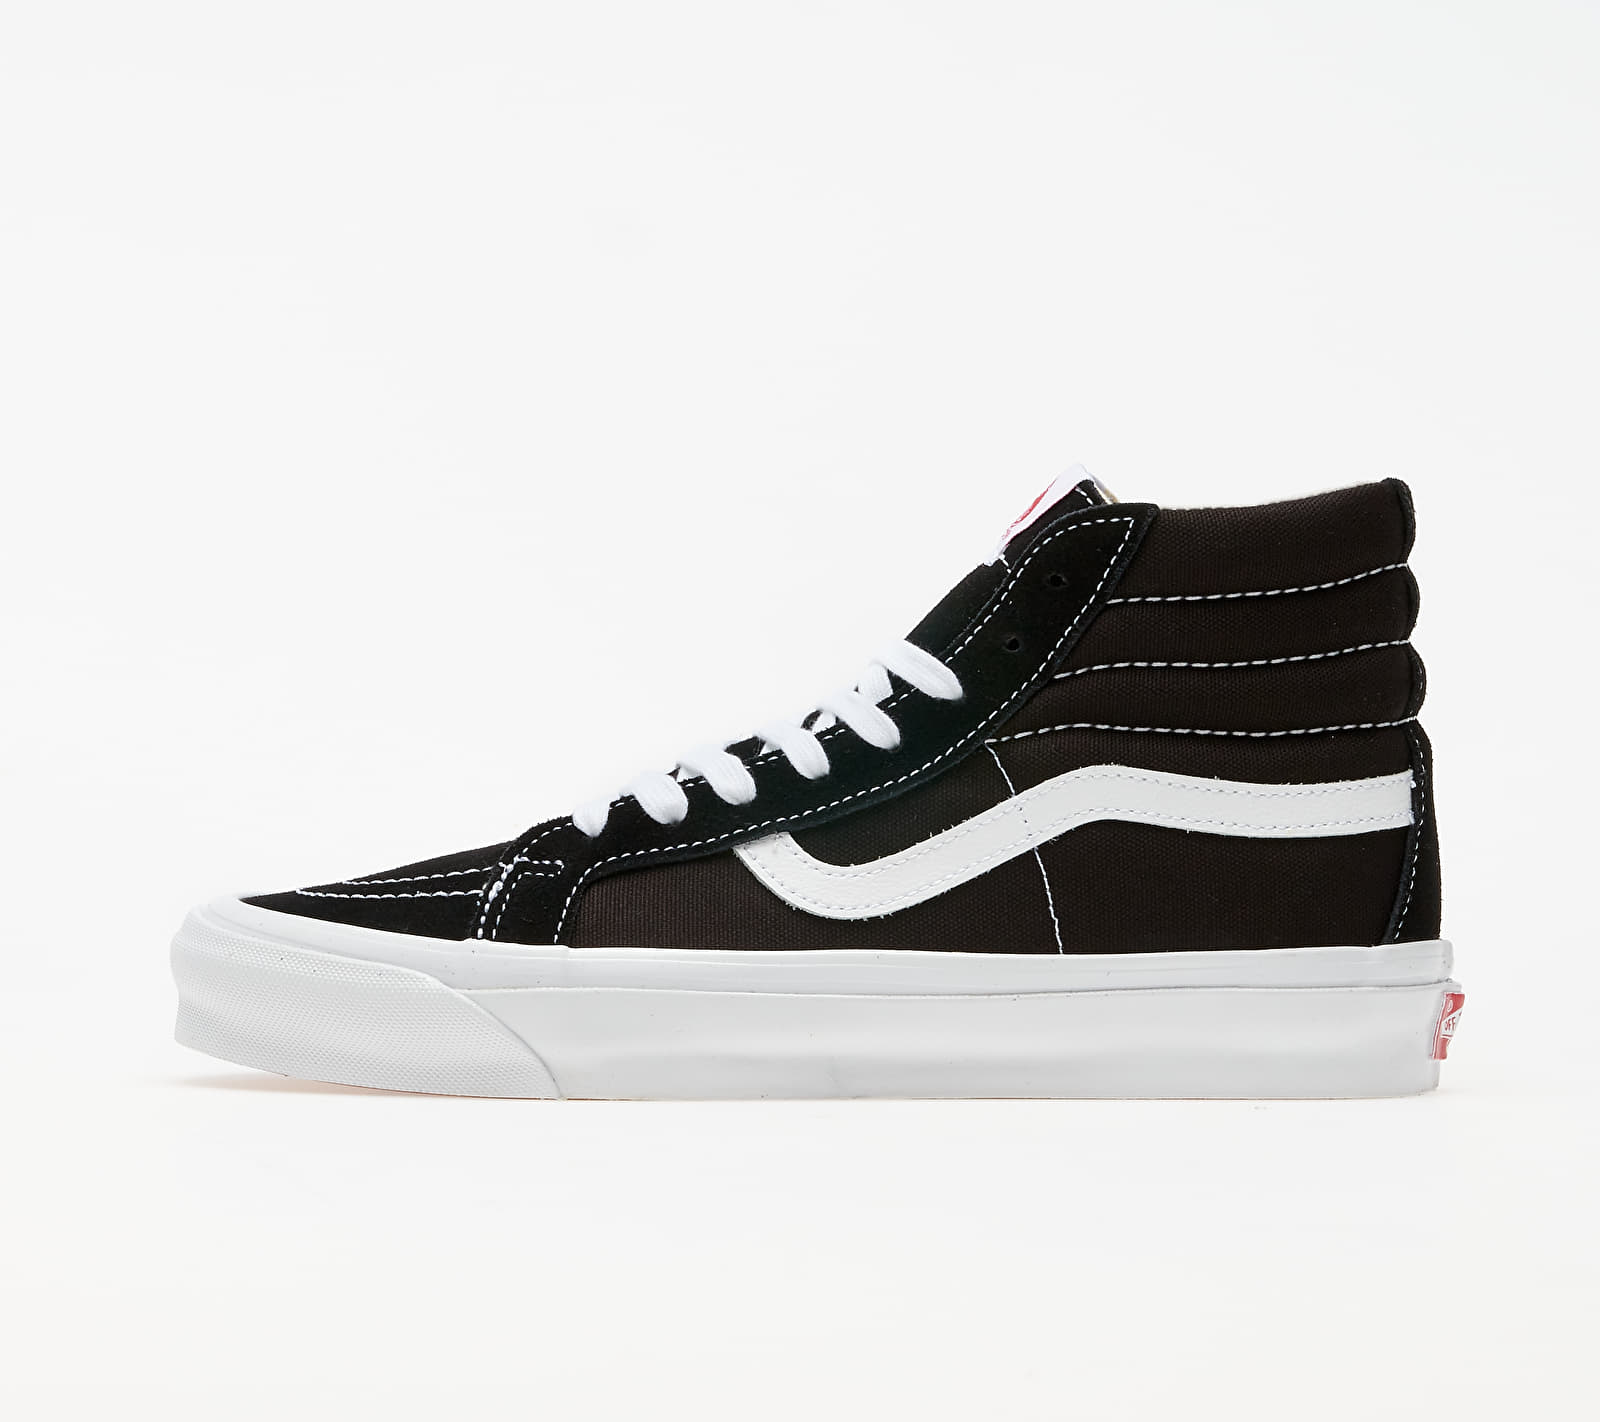 Vans Vault OG Sk8-Hi LX (Suede/ Canvas) Black/ True White EUR 34.5